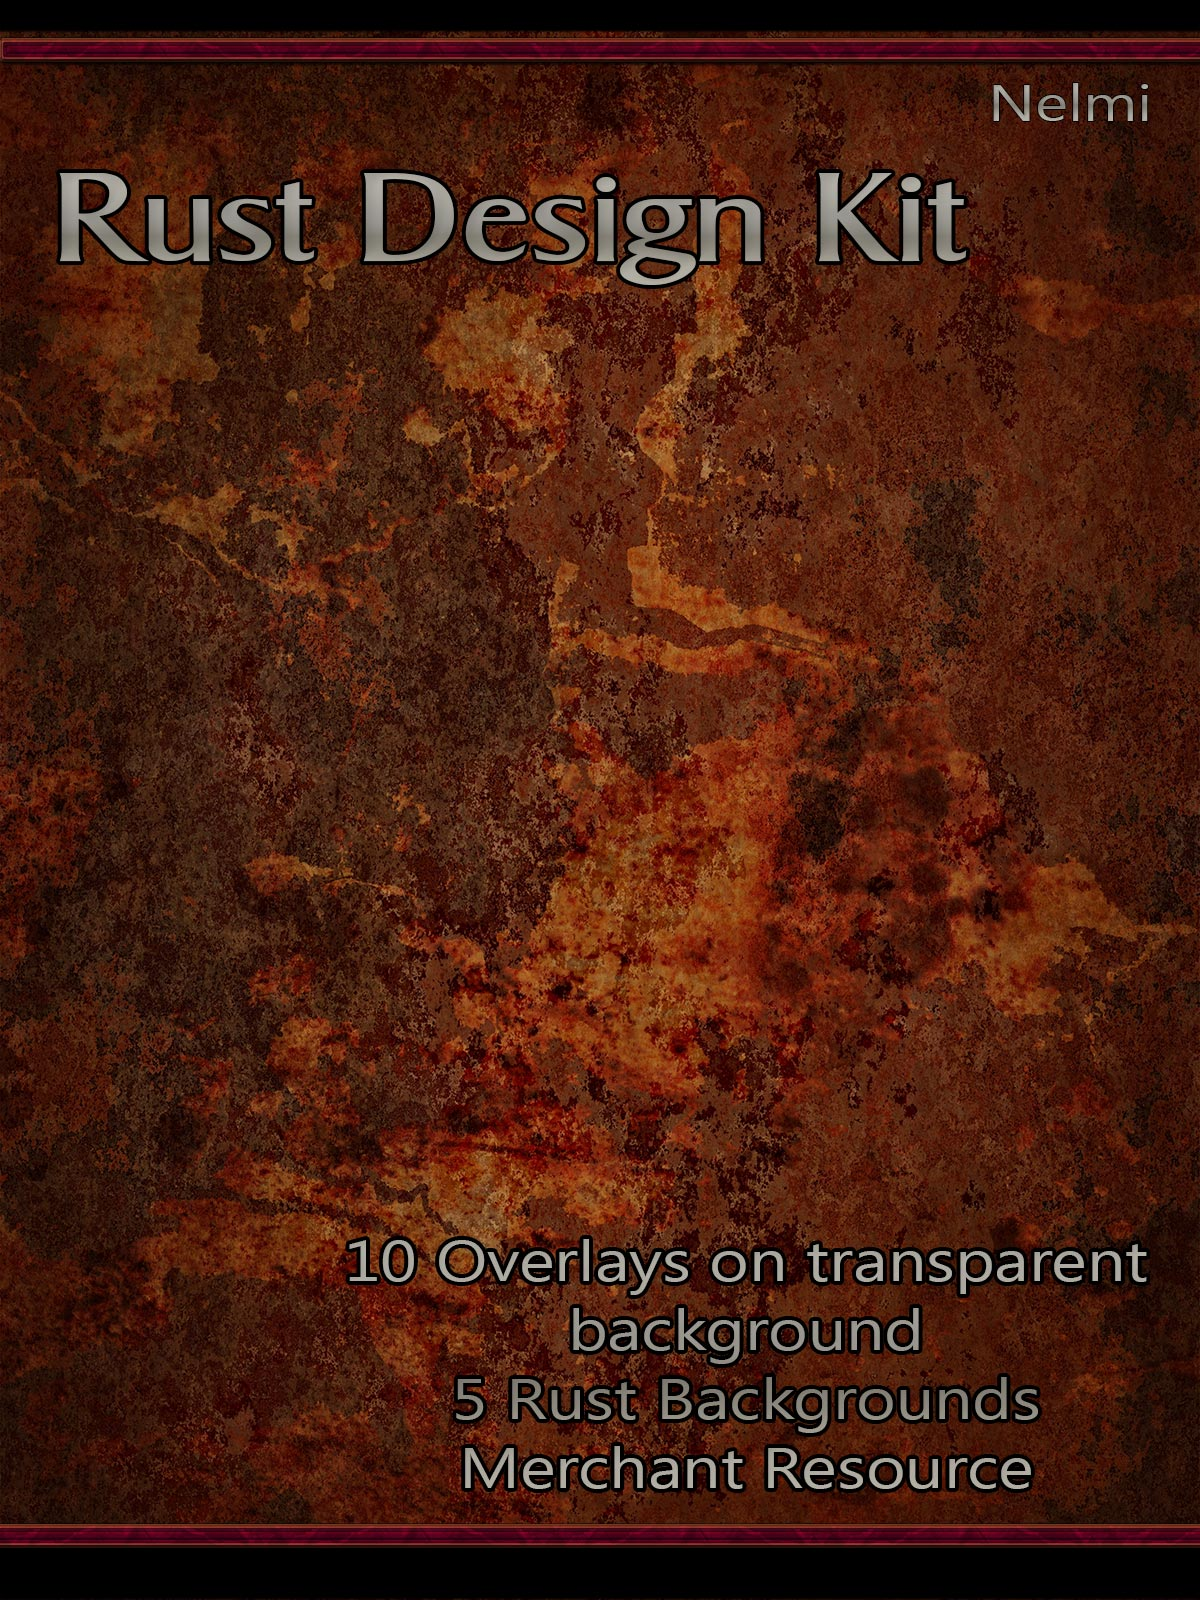 Merchant Resource: Rust Design Kit